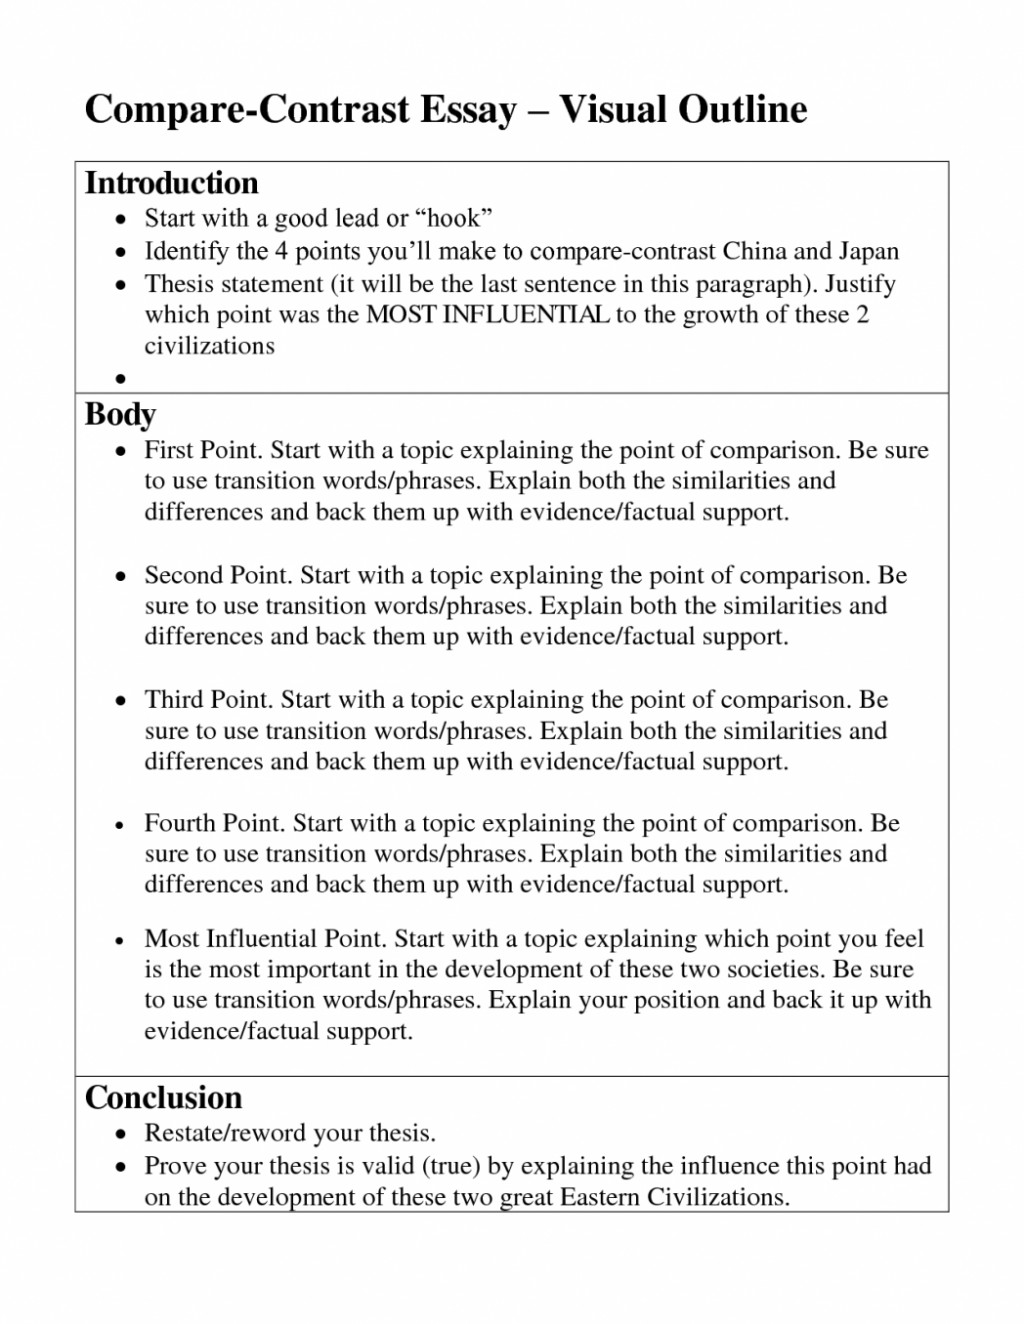 003 Compare And Contrast Essay Topics For High School Students English College Pdf Research Paper 1048x1356 Stupendous Middle Elementary Large